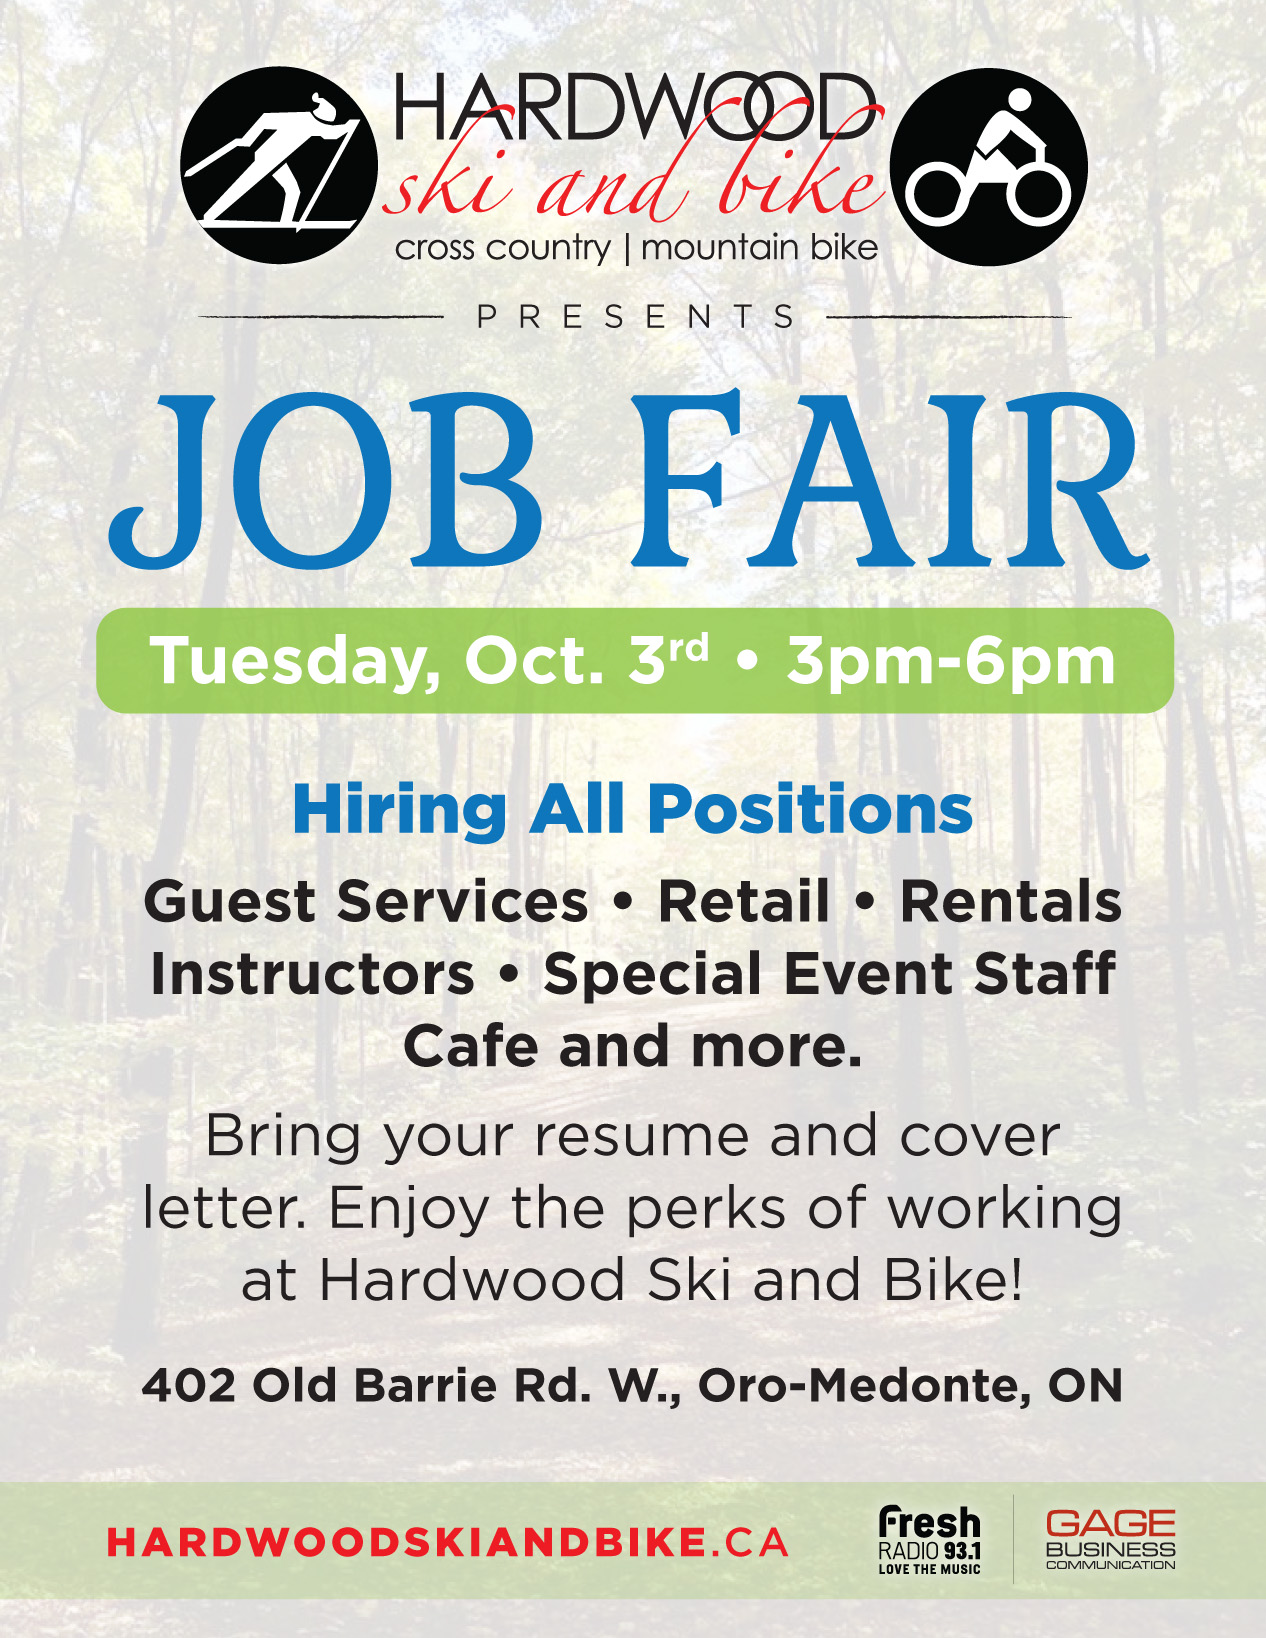 Job Fair | Hardwood Ski and Bike